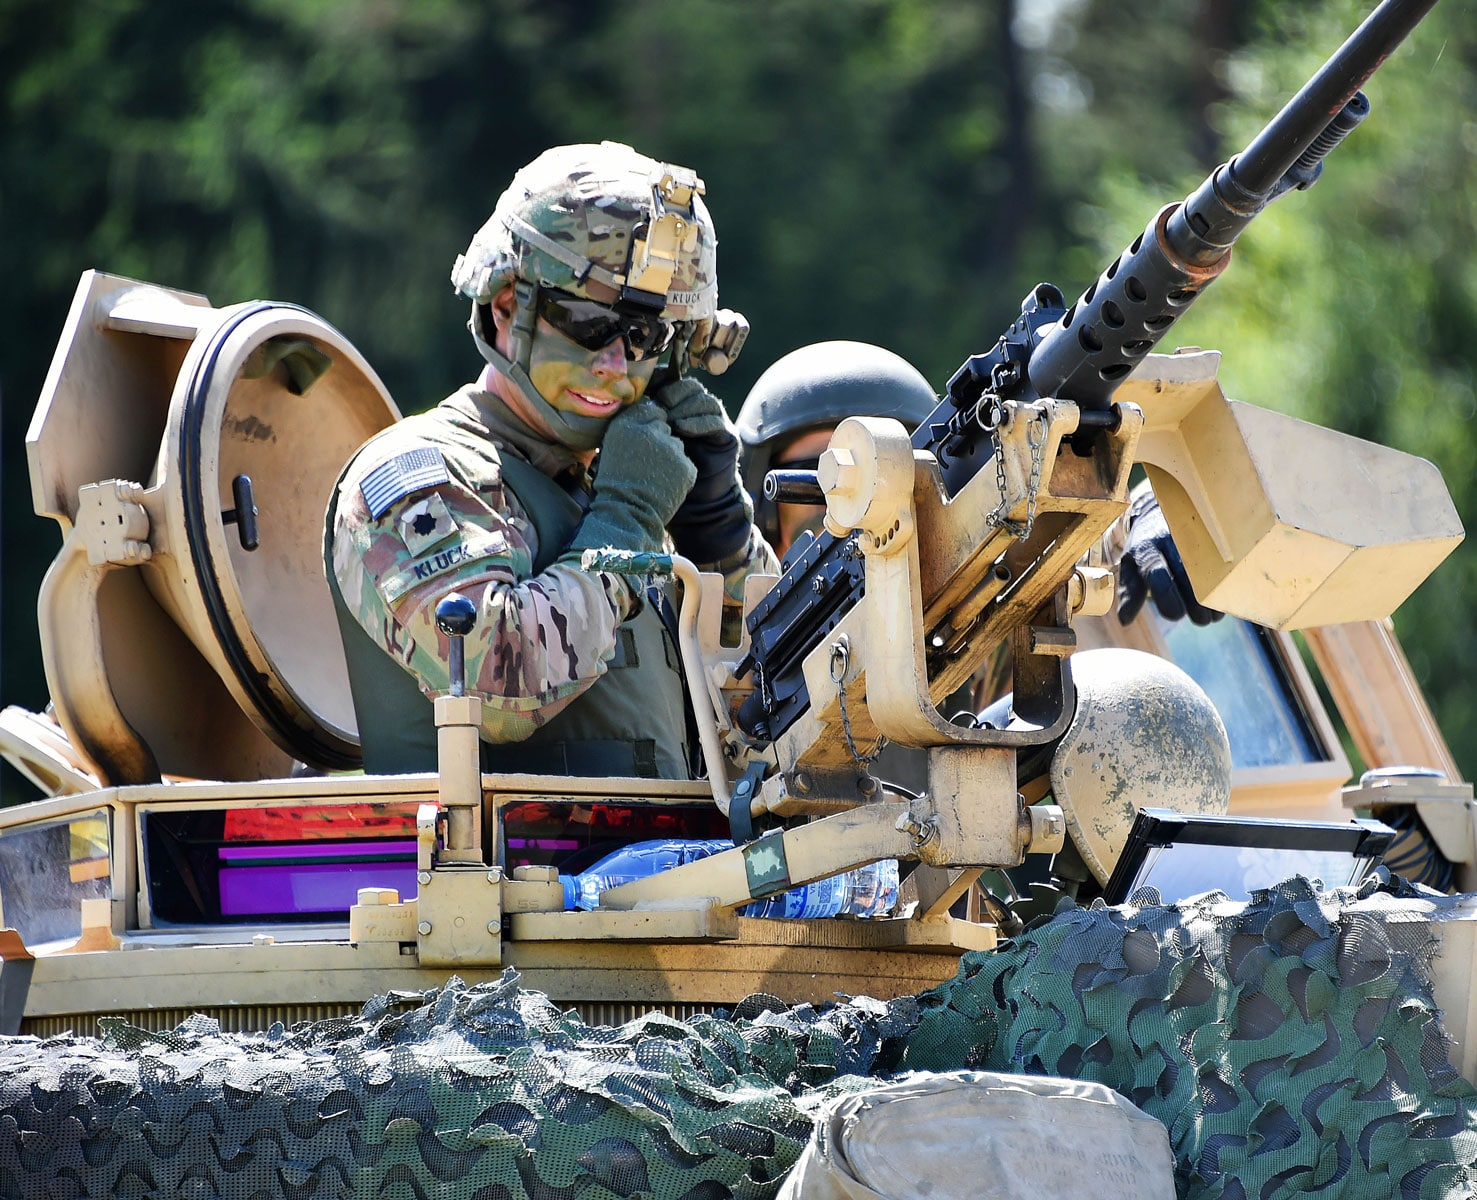 Army Lt. Col. Jonathan Kluck, commander, 4th Infantry Division's 1st Battalion, 68th Armor Regiment, 3rd Armored Brigade Combat Team, prepares to dismount his M1A2 Abrams tank after participating in a combined arms live-fire exercise at the 7th Army Training Command's Grafenwoehr Training Area in Germany.